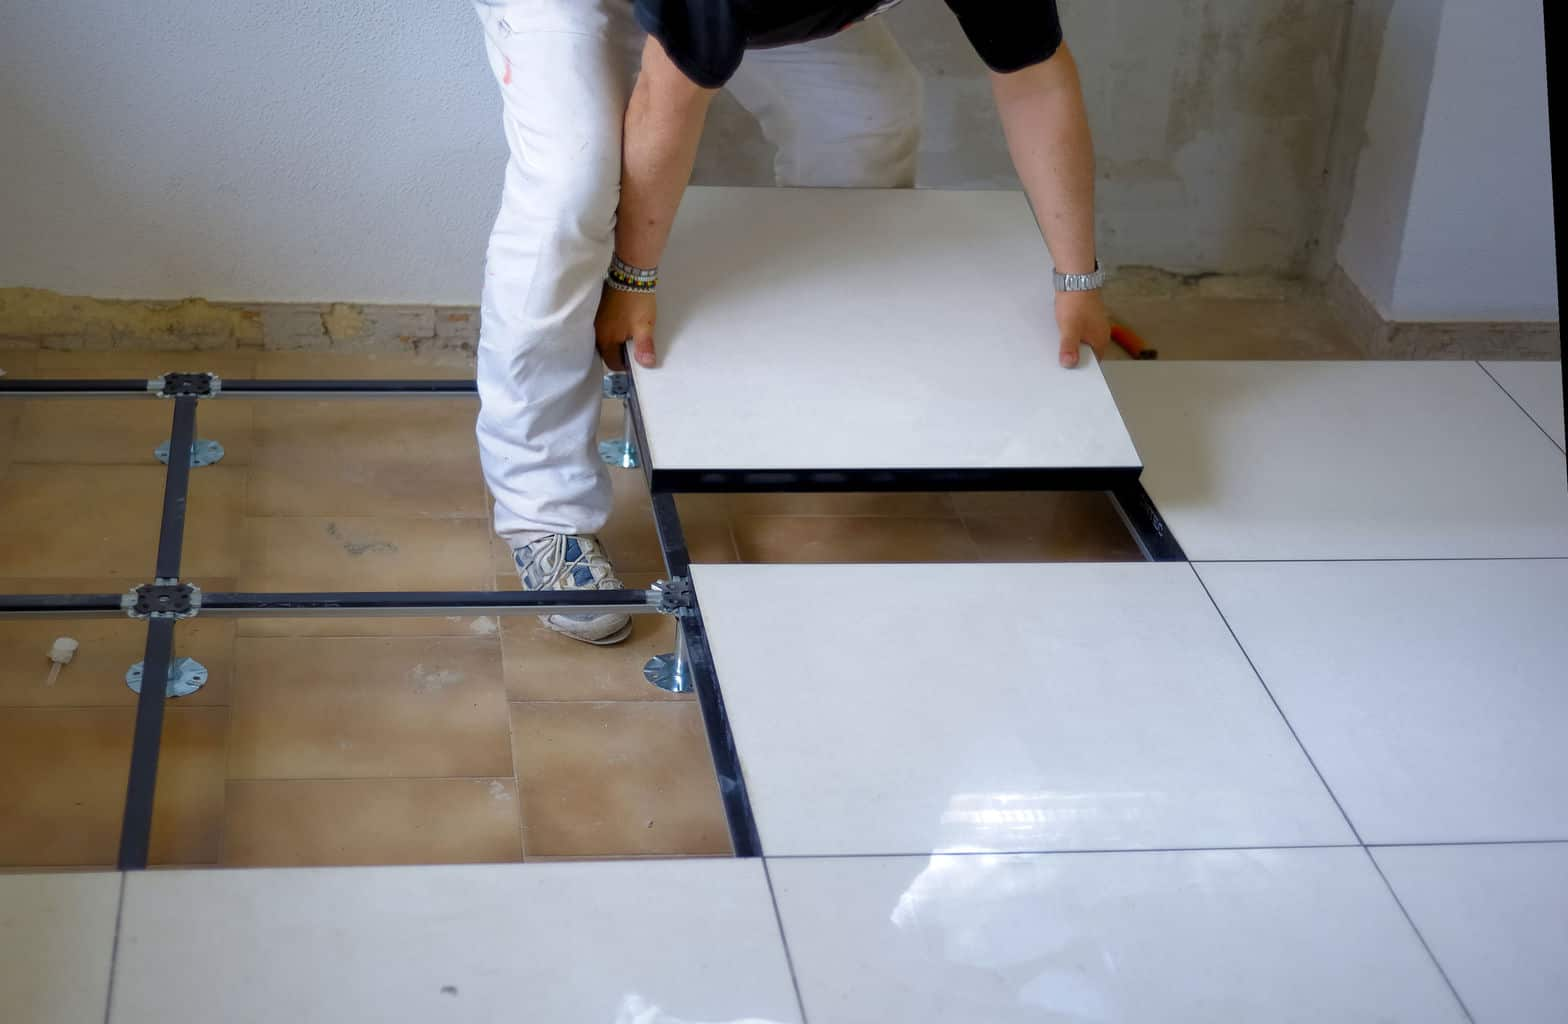 How to clean porcelain tile flooring a full guide to procelain durability of porcelain tile flooring dailygadgetfo Gallery